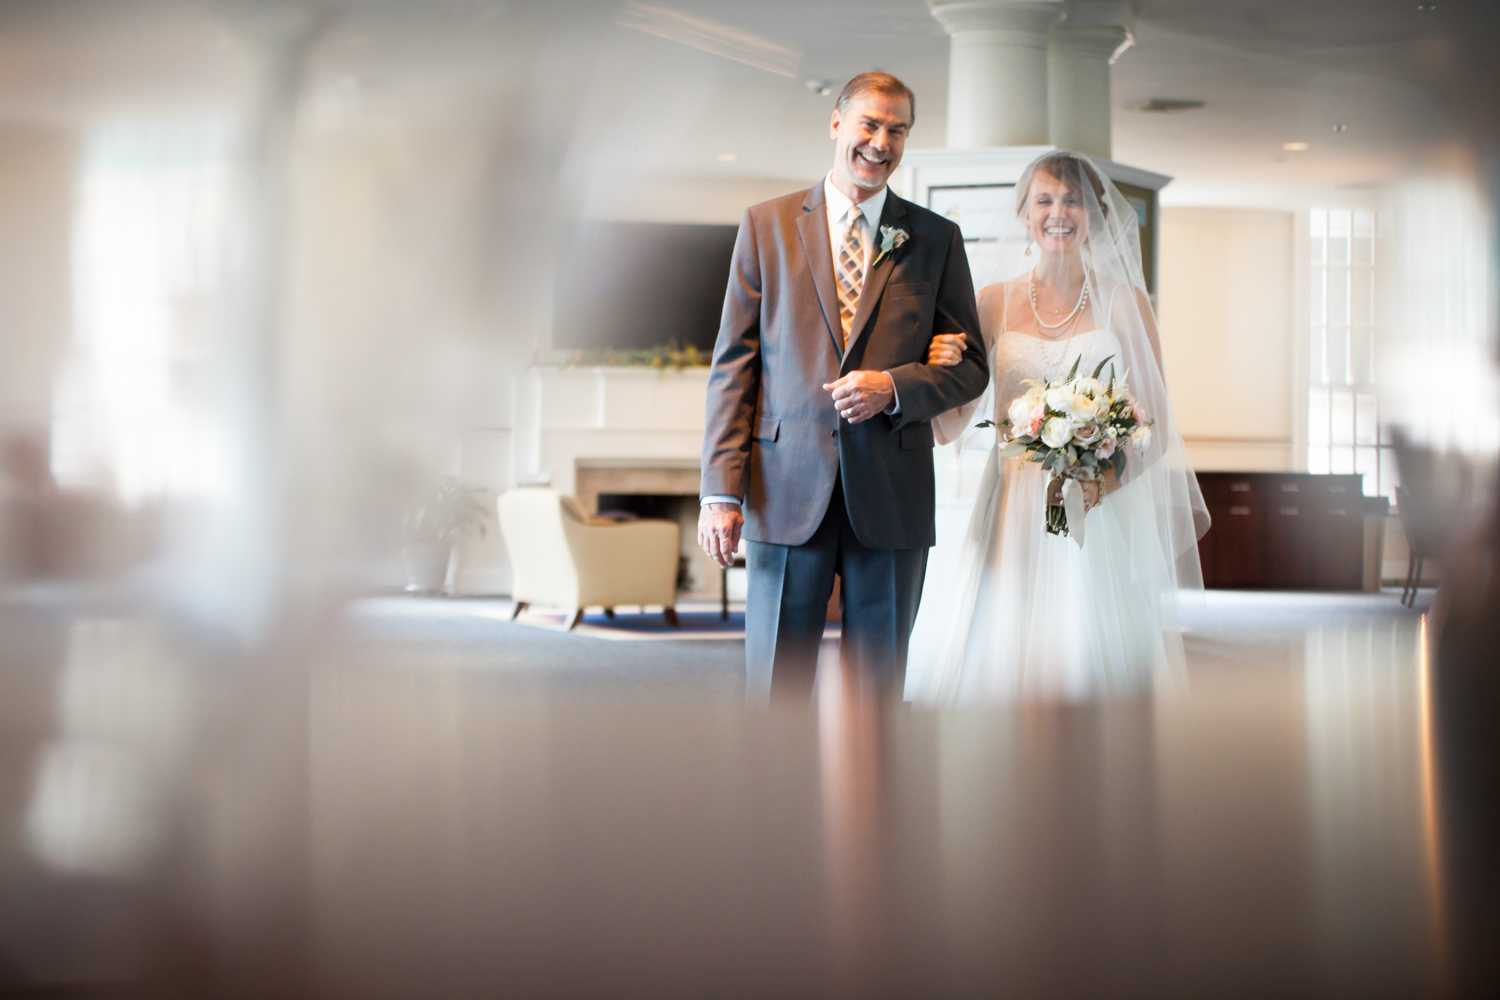 Valerie-Kenny-Chicago-Wedding-Photography-66.jpg